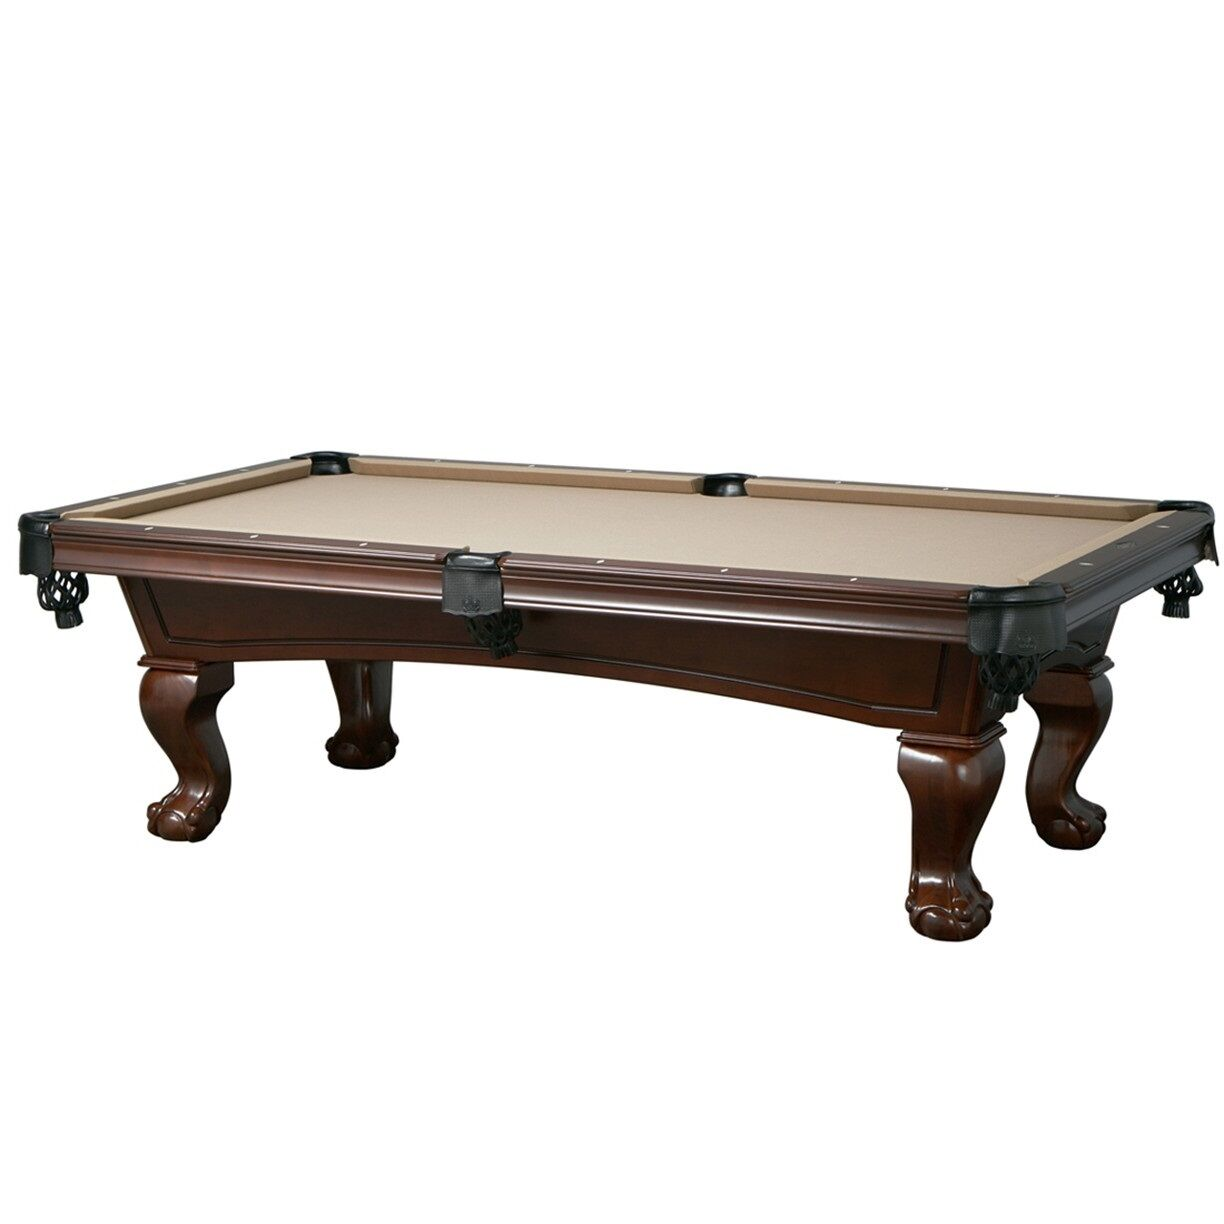 Lincoln 7' Slate Pool Table with Antique Walnut Finish for Billiards